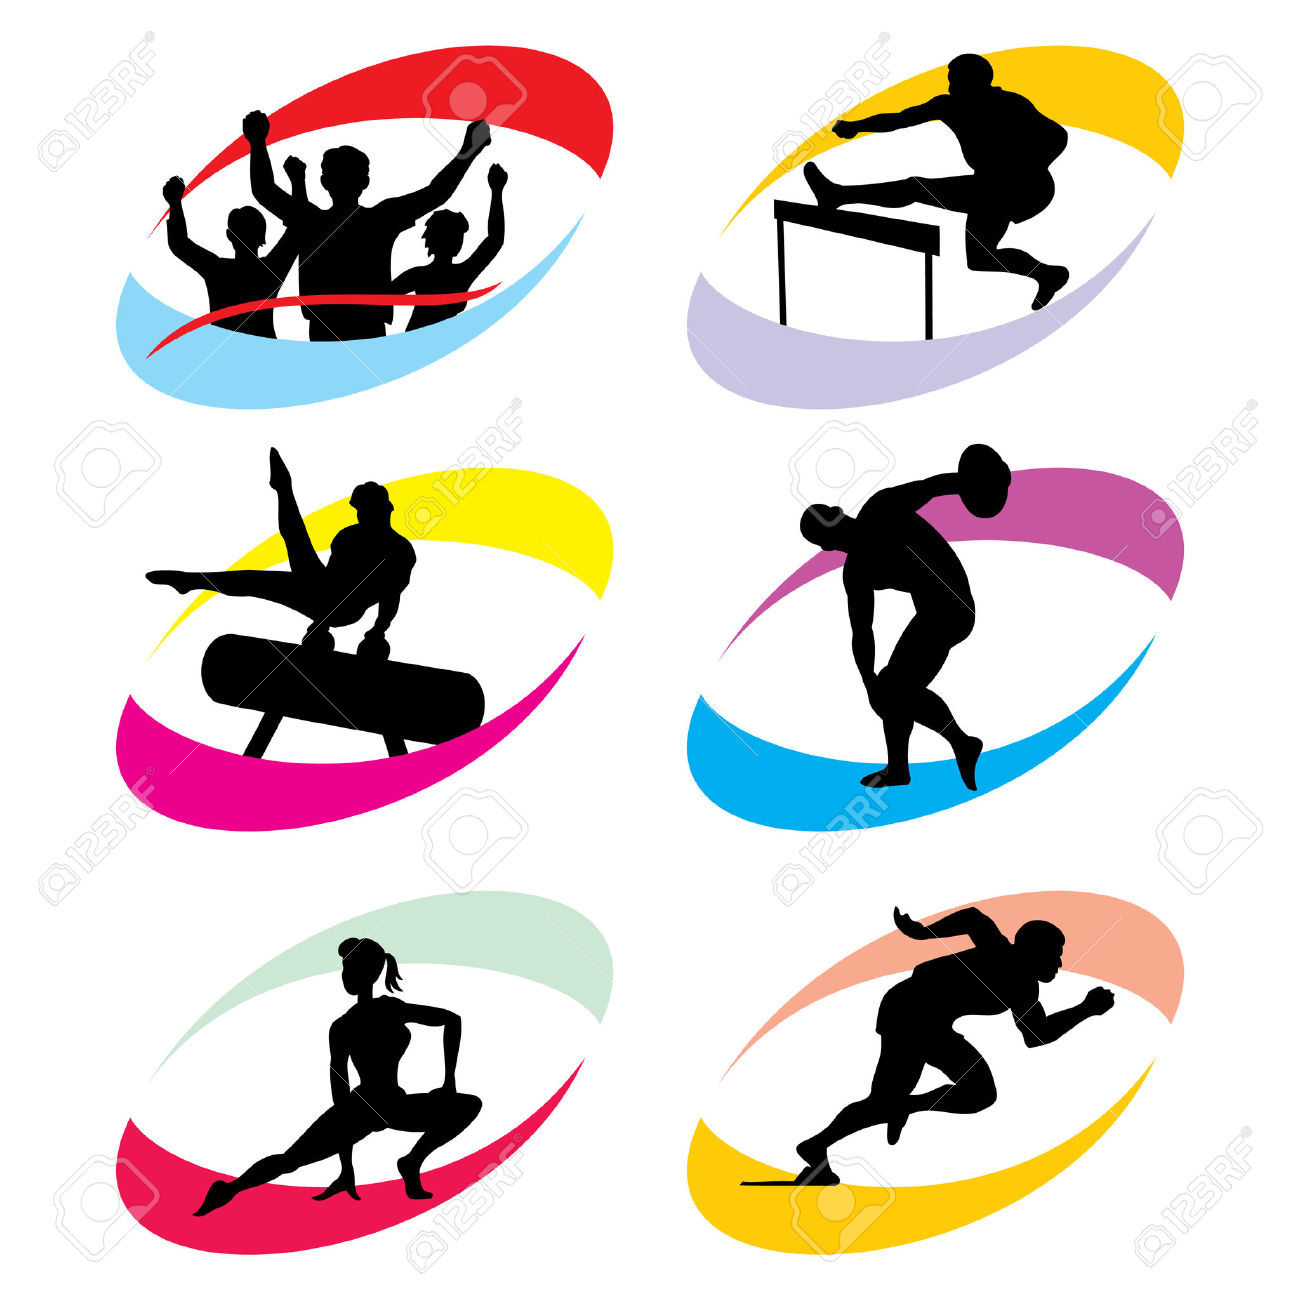 Sport games clipart clipground for Sports clipart